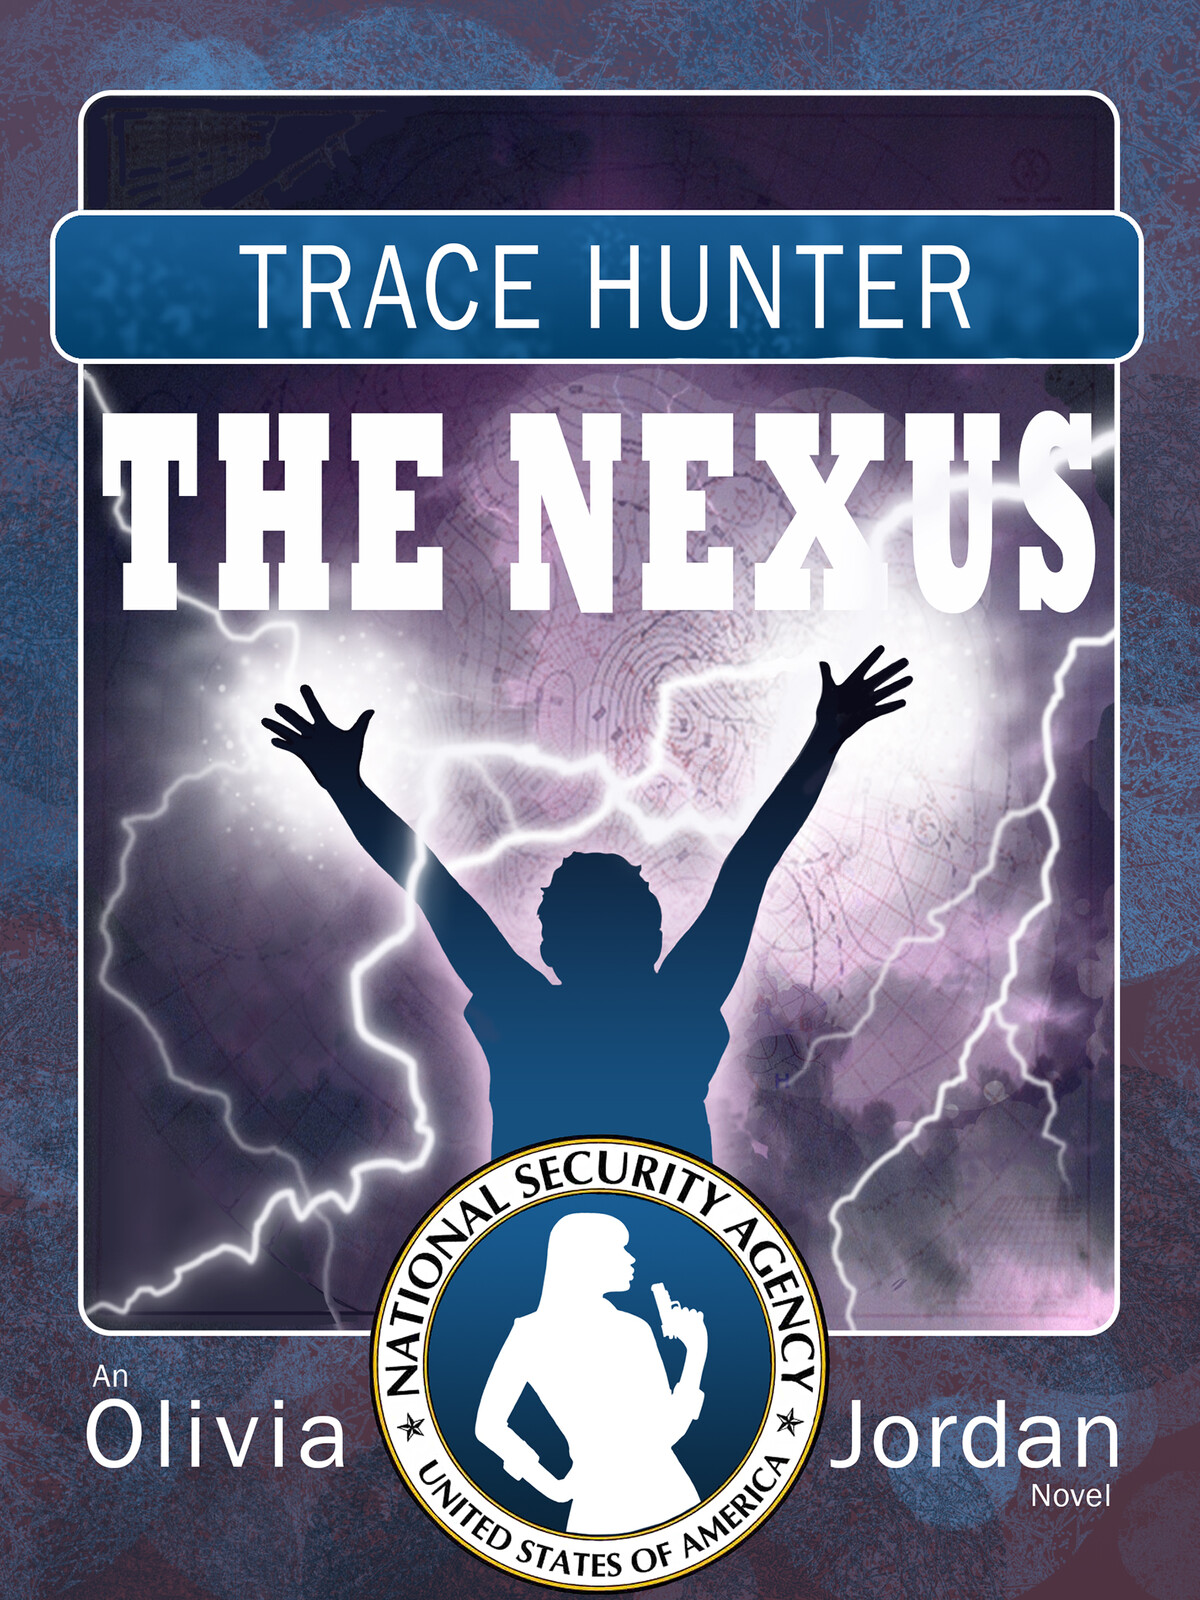 Trace Hunter's The Nexus